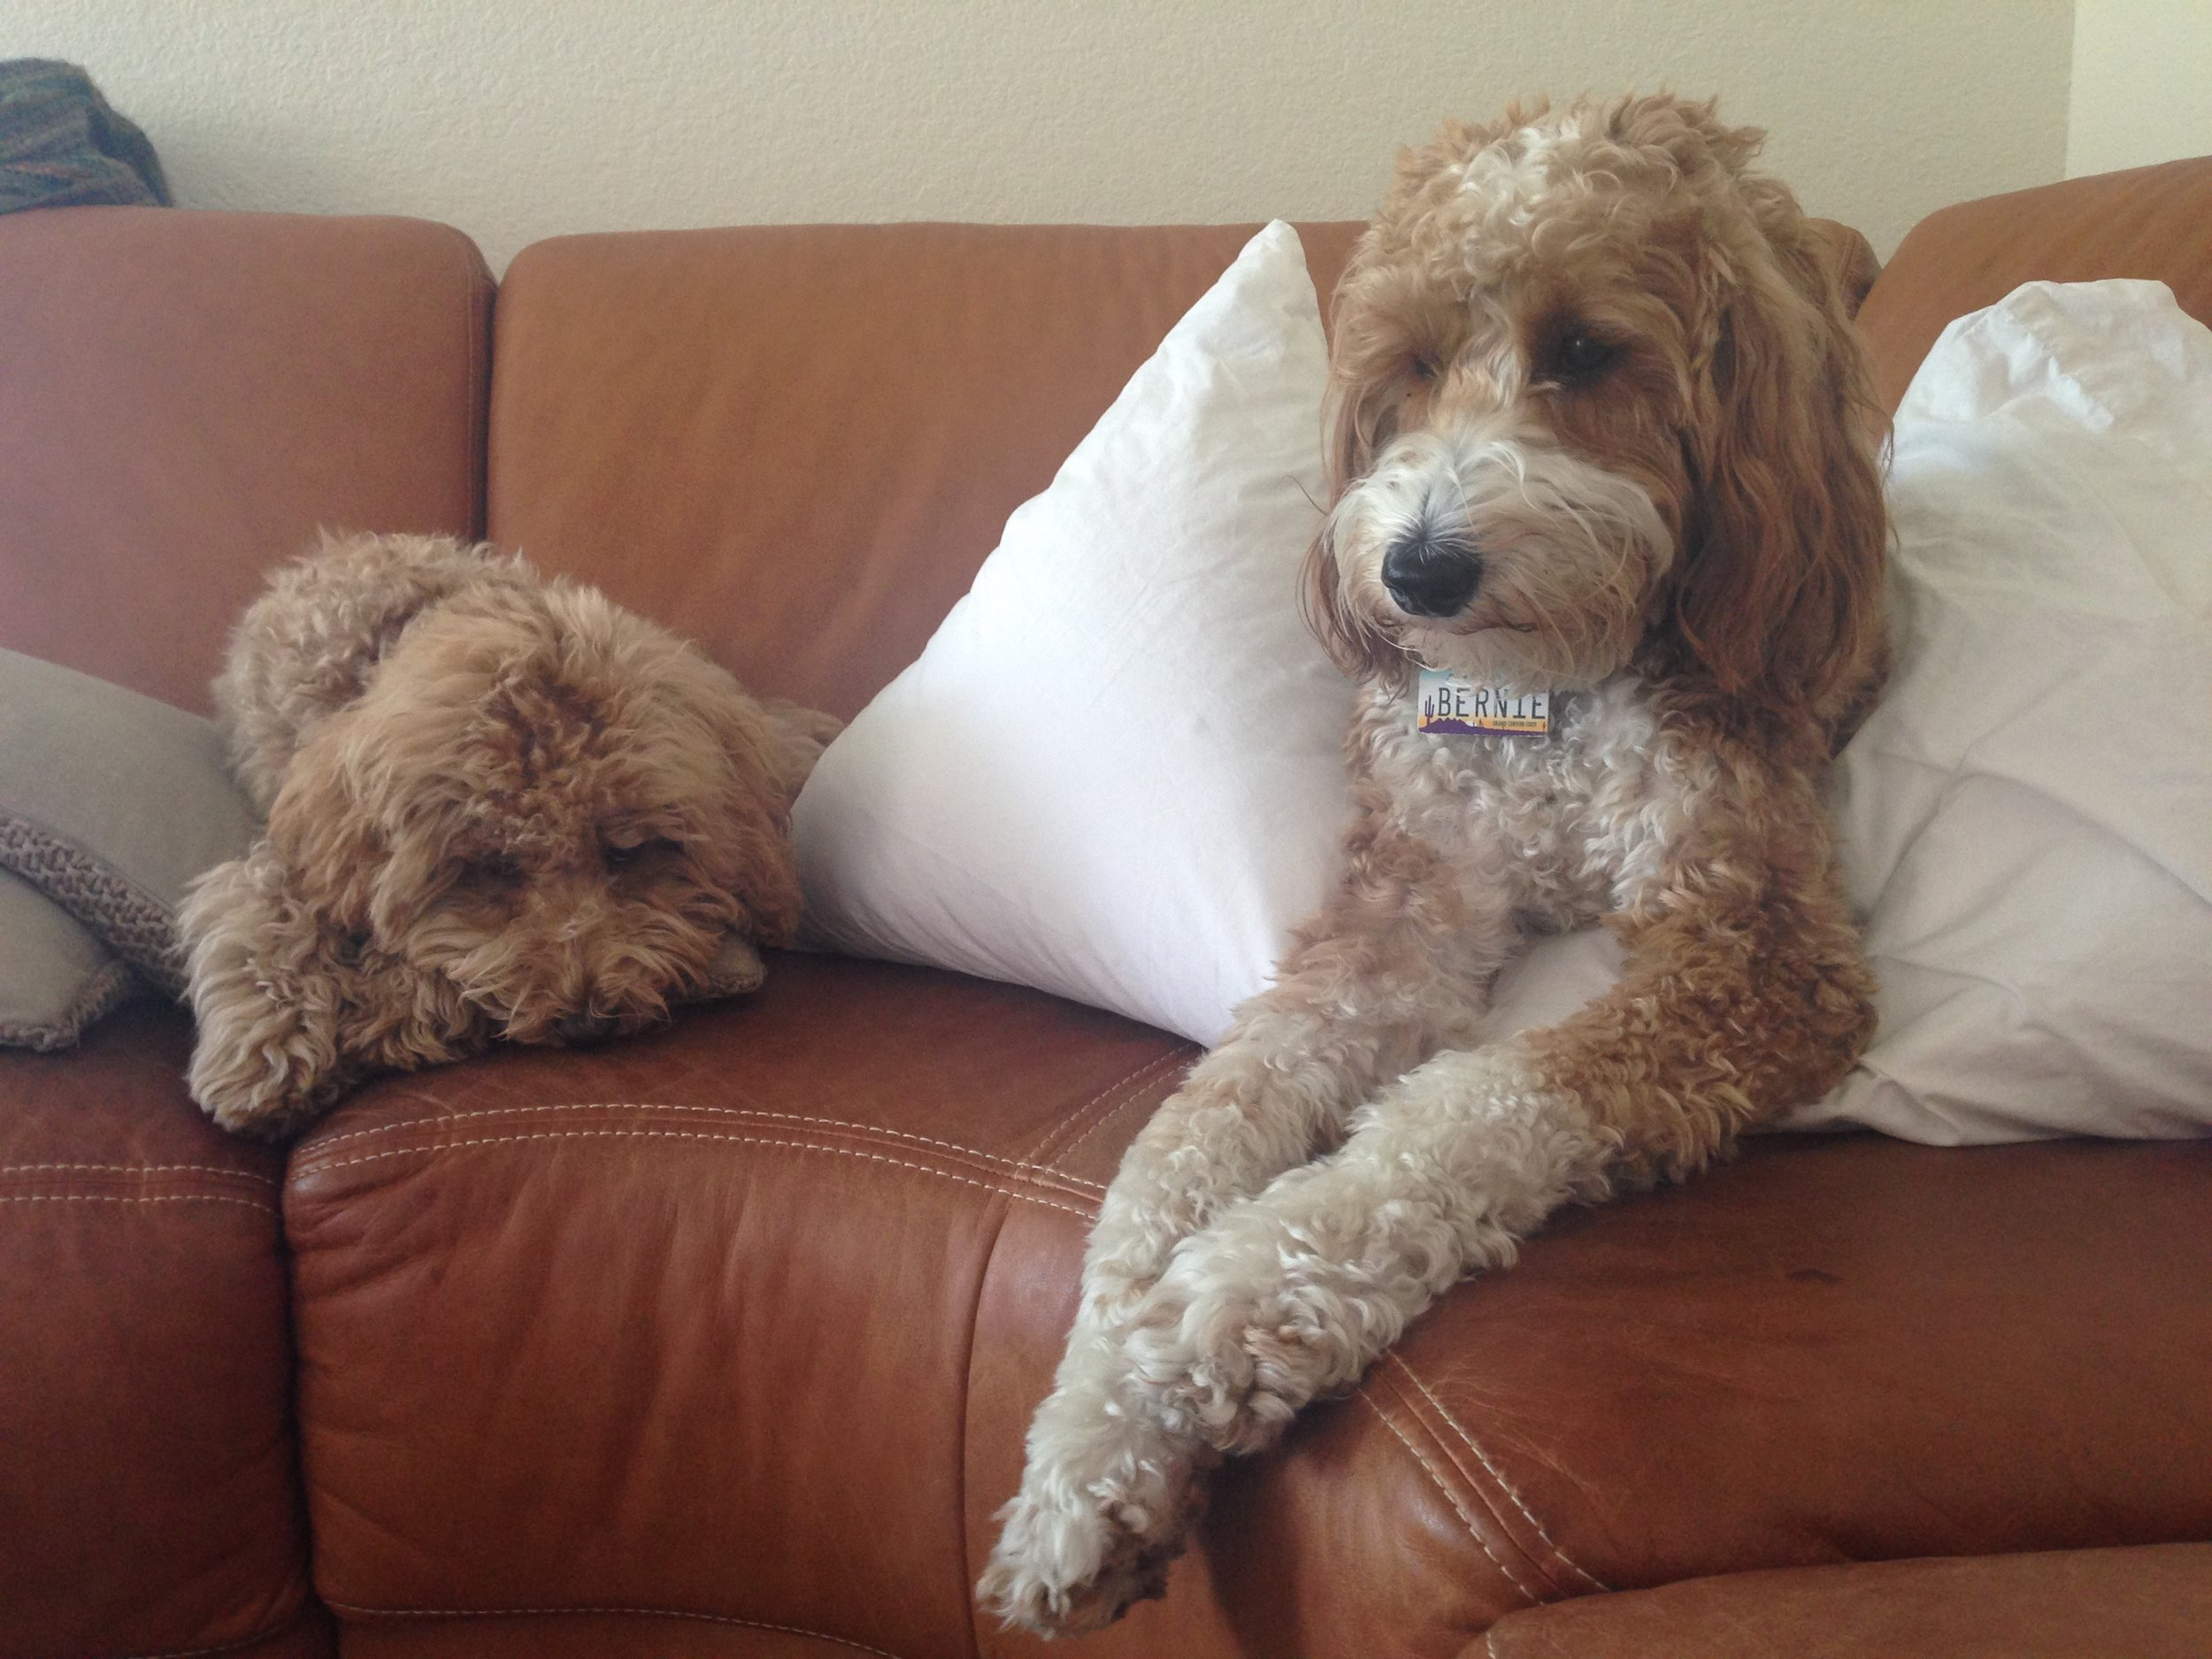 Bernie lounges on the living room couch with his pillow while Lizzie remains by his side as his supportive little sister.